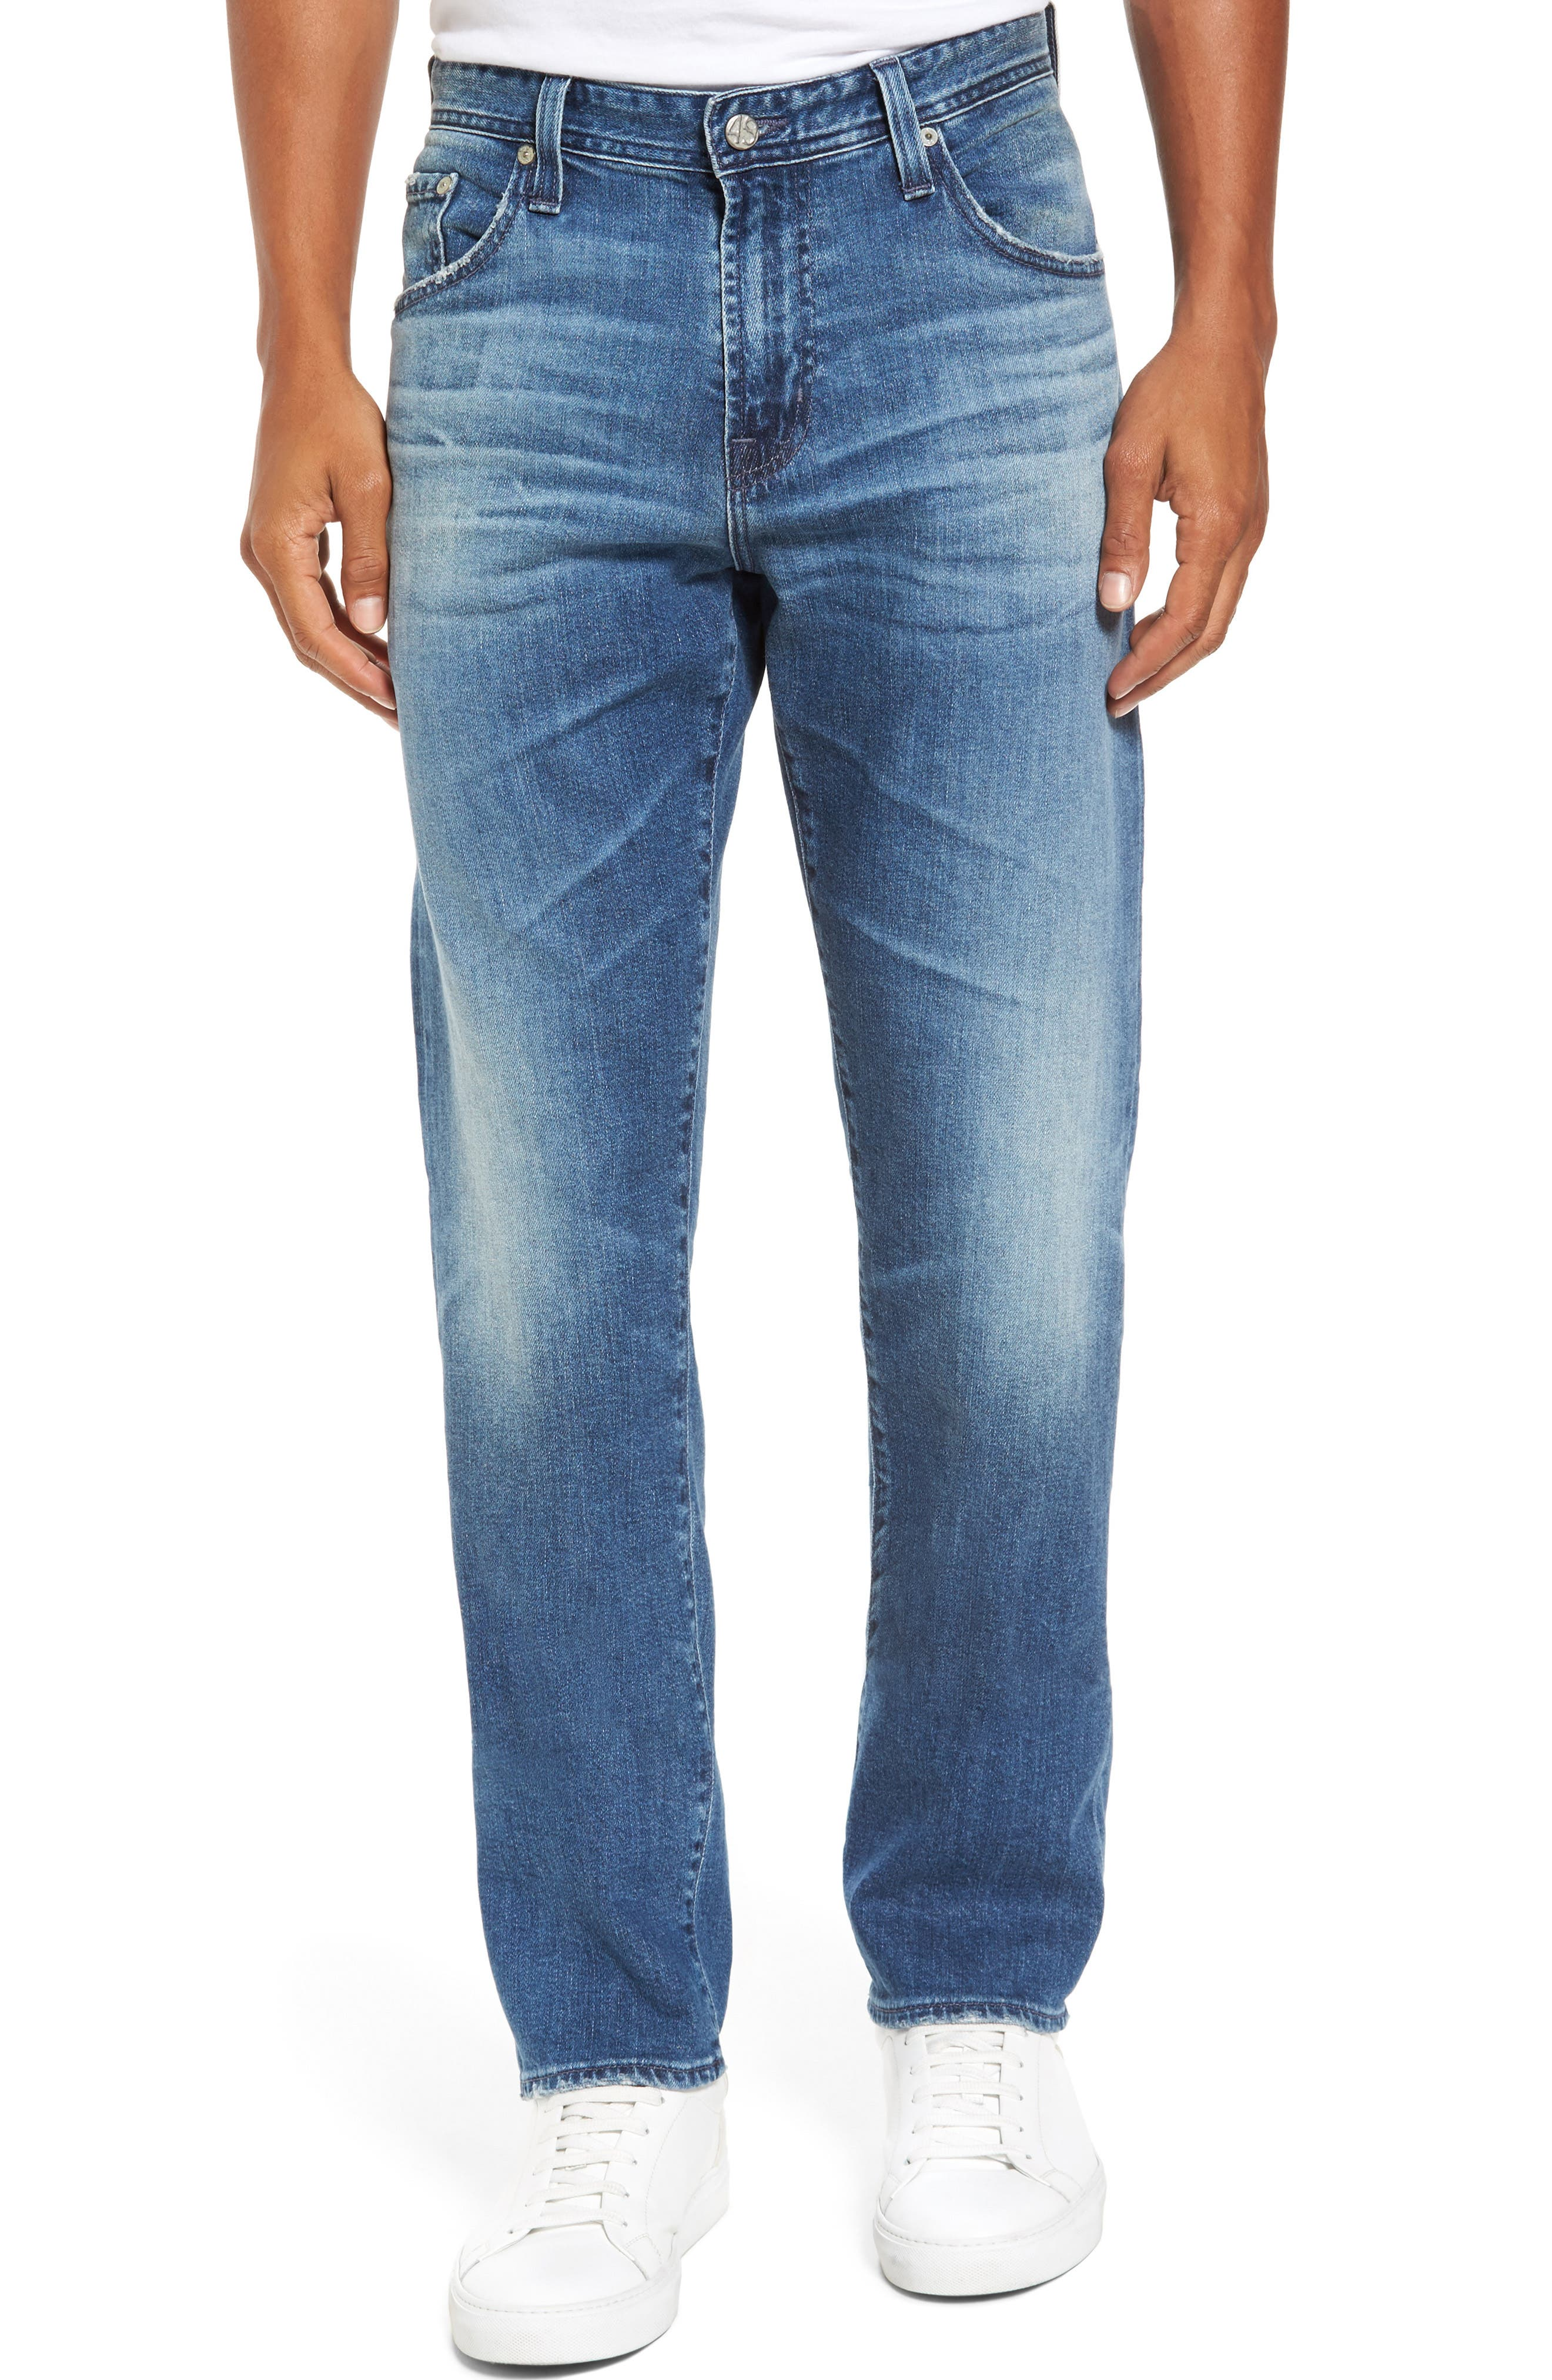 Ives Straight Fit Jeans,                             Main thumbnail 1, color,                             468